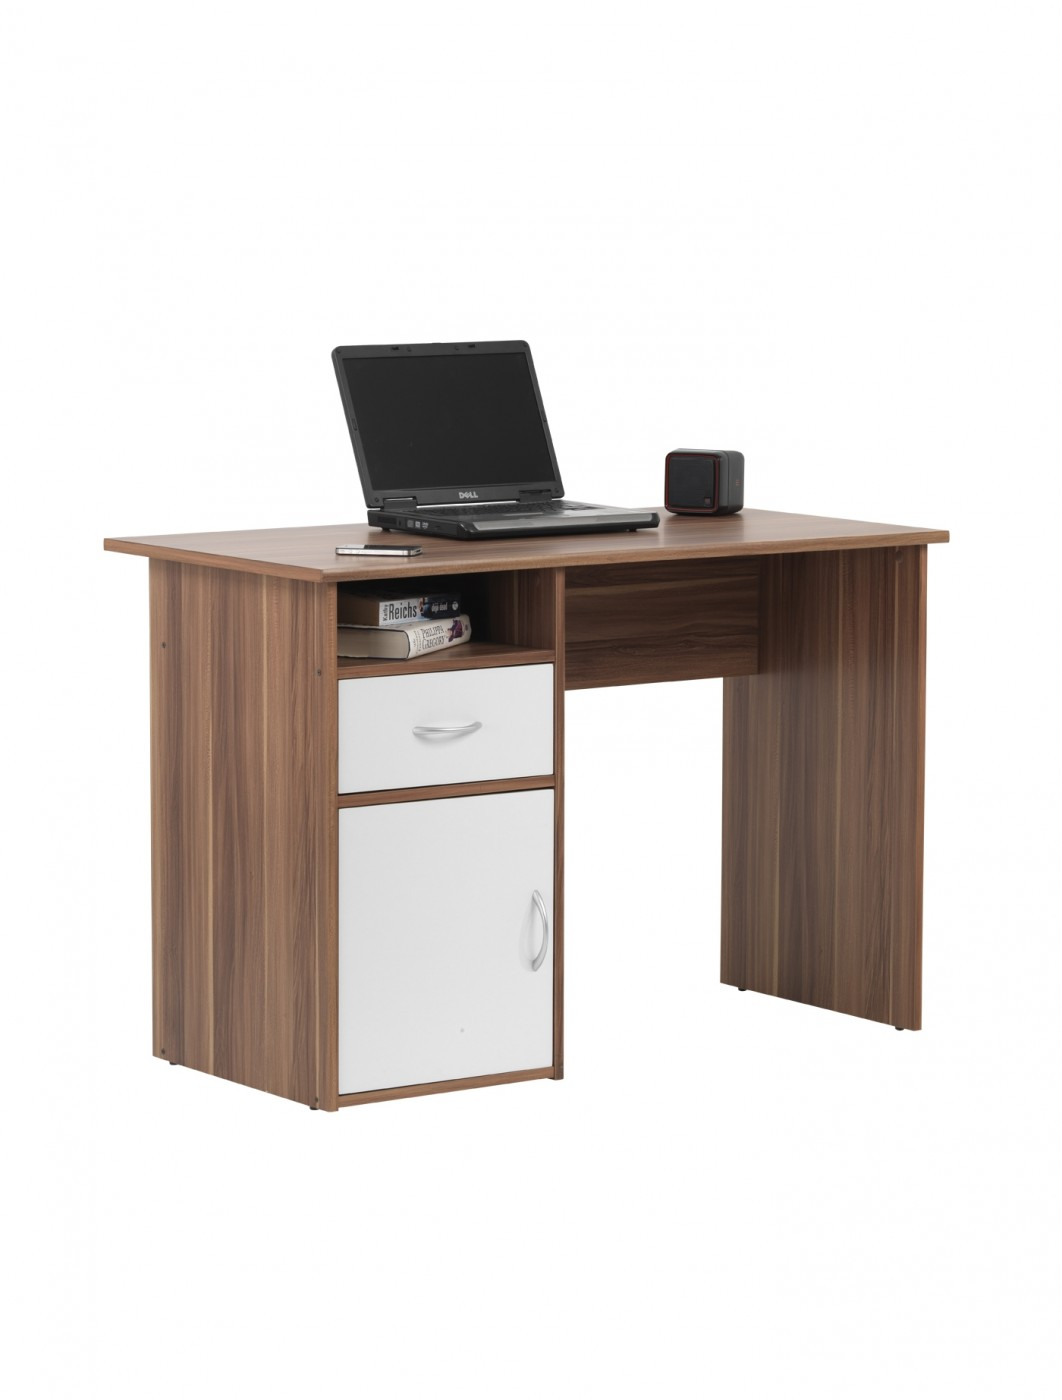 Alphason Hastings Computer Desk AW22145